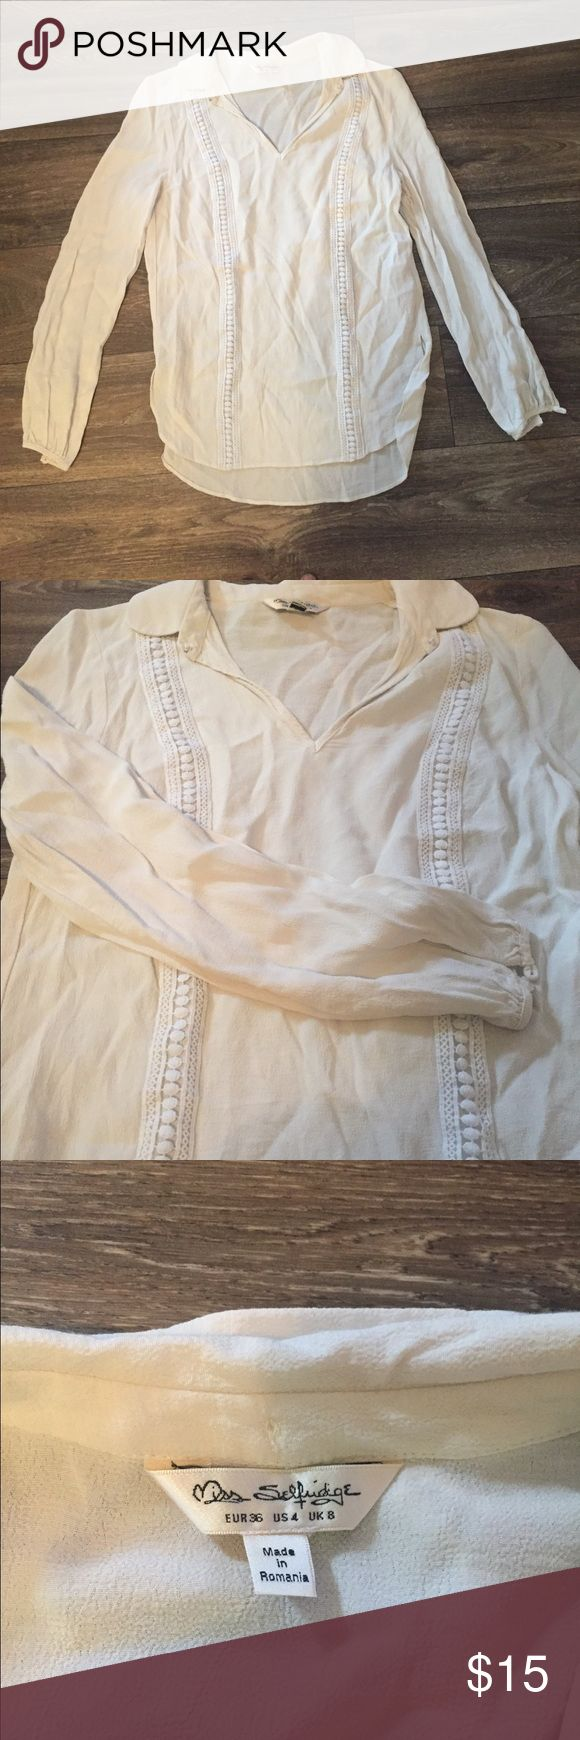 Miss Selfridge Top Lovely Miss Selfridge top! I only wore it a few times. It's perfect for work or a night out! Miss Selfridge Tops Blouses